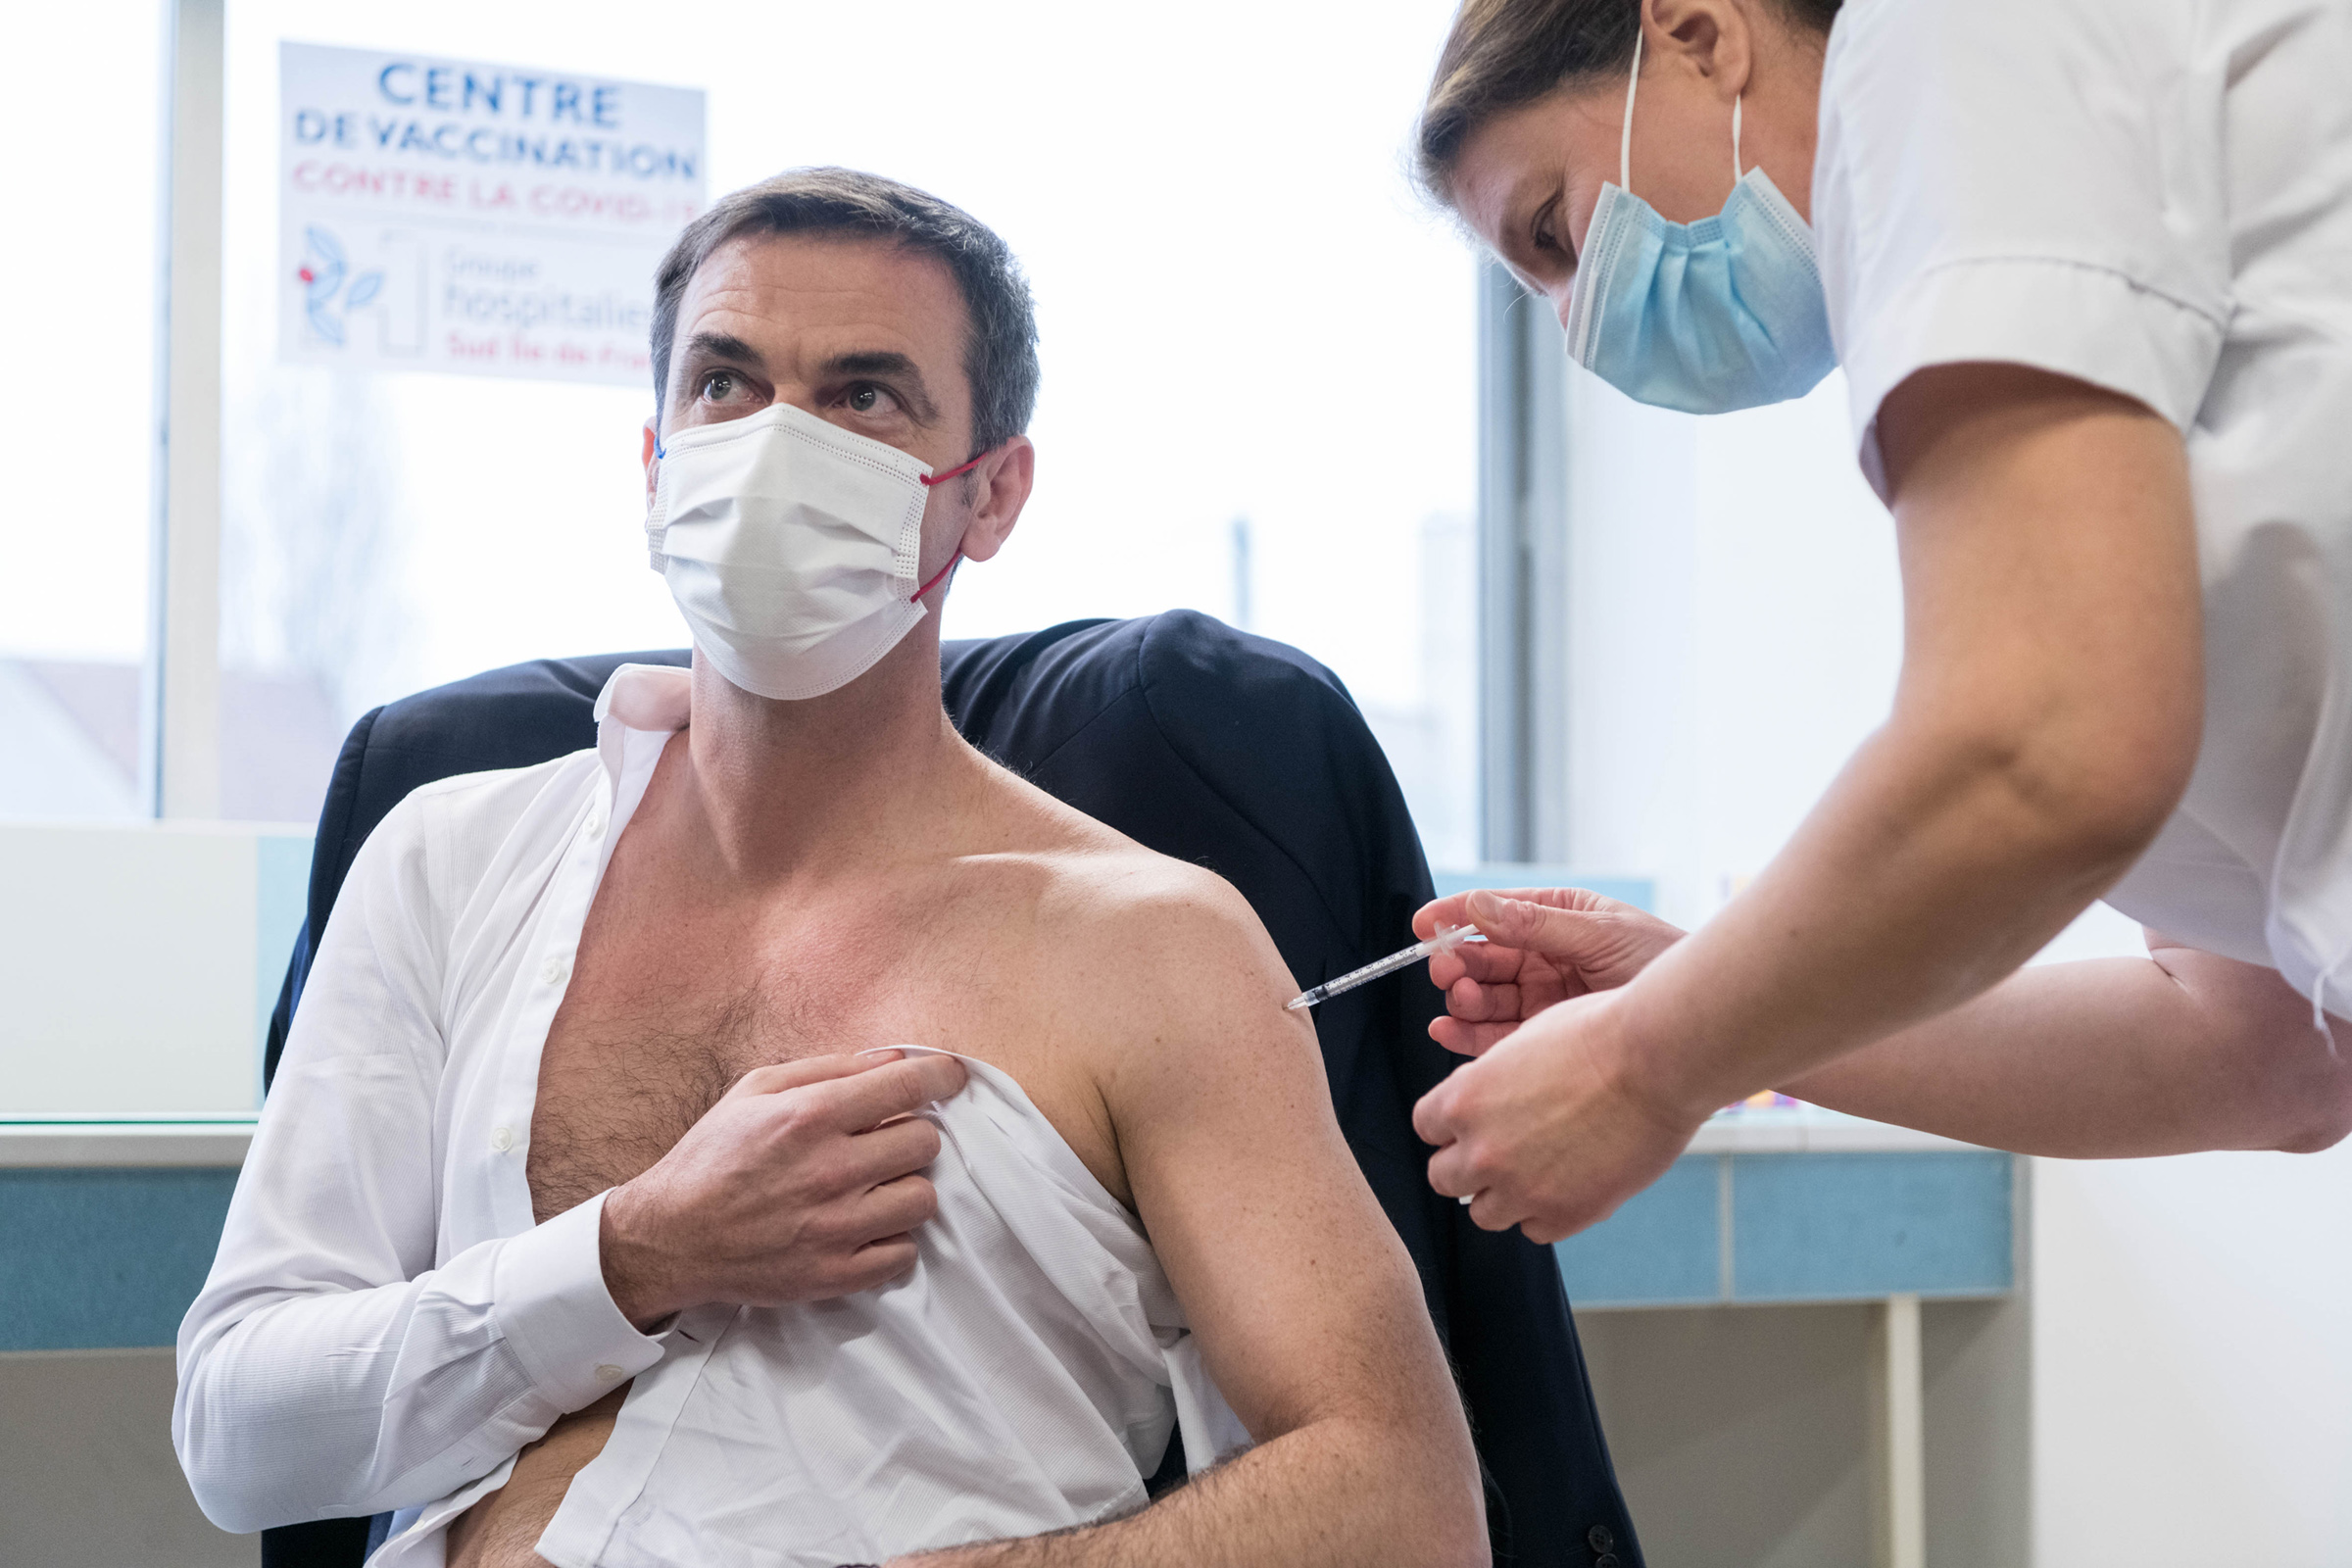 French Health Minister Olivier Veran receives the first injection of the AstraZeneca vaccine against COVID-19 in a hospital in Melun, France, on Feb. 8, 2021.